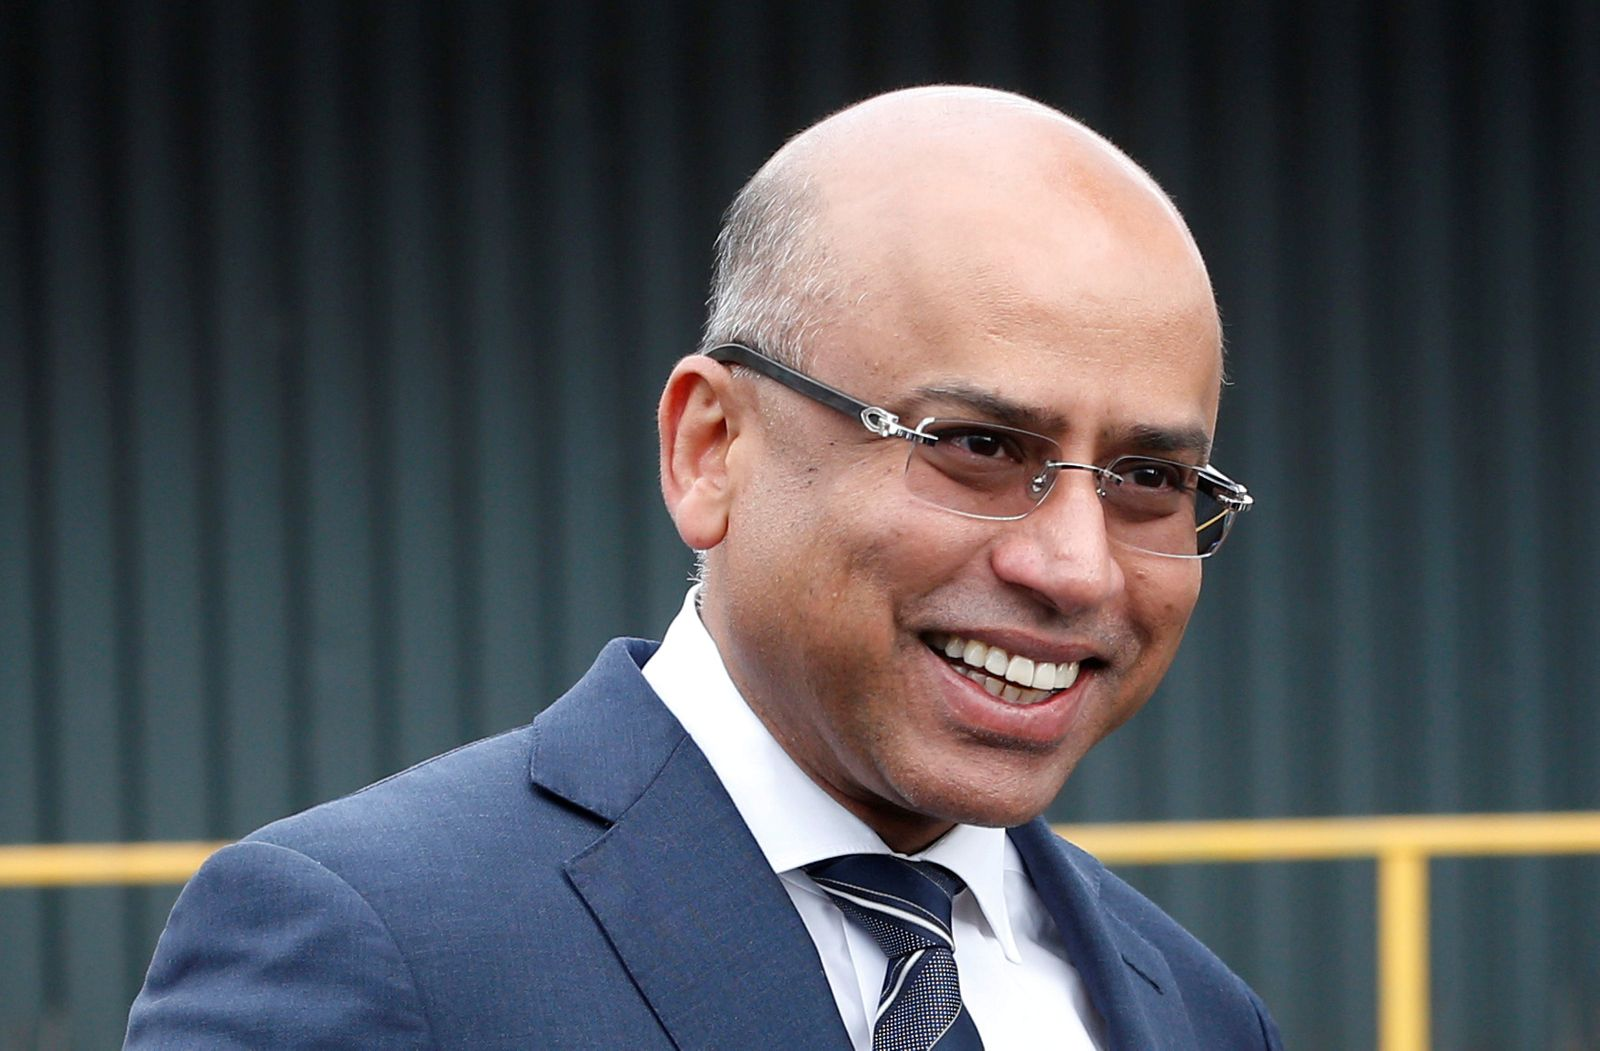 FILE PHOTO: Liberty Steel's Sanjeev Gupta smiles outside their newly acquired Liberty Steel processing mill in Dalzell, Scotland